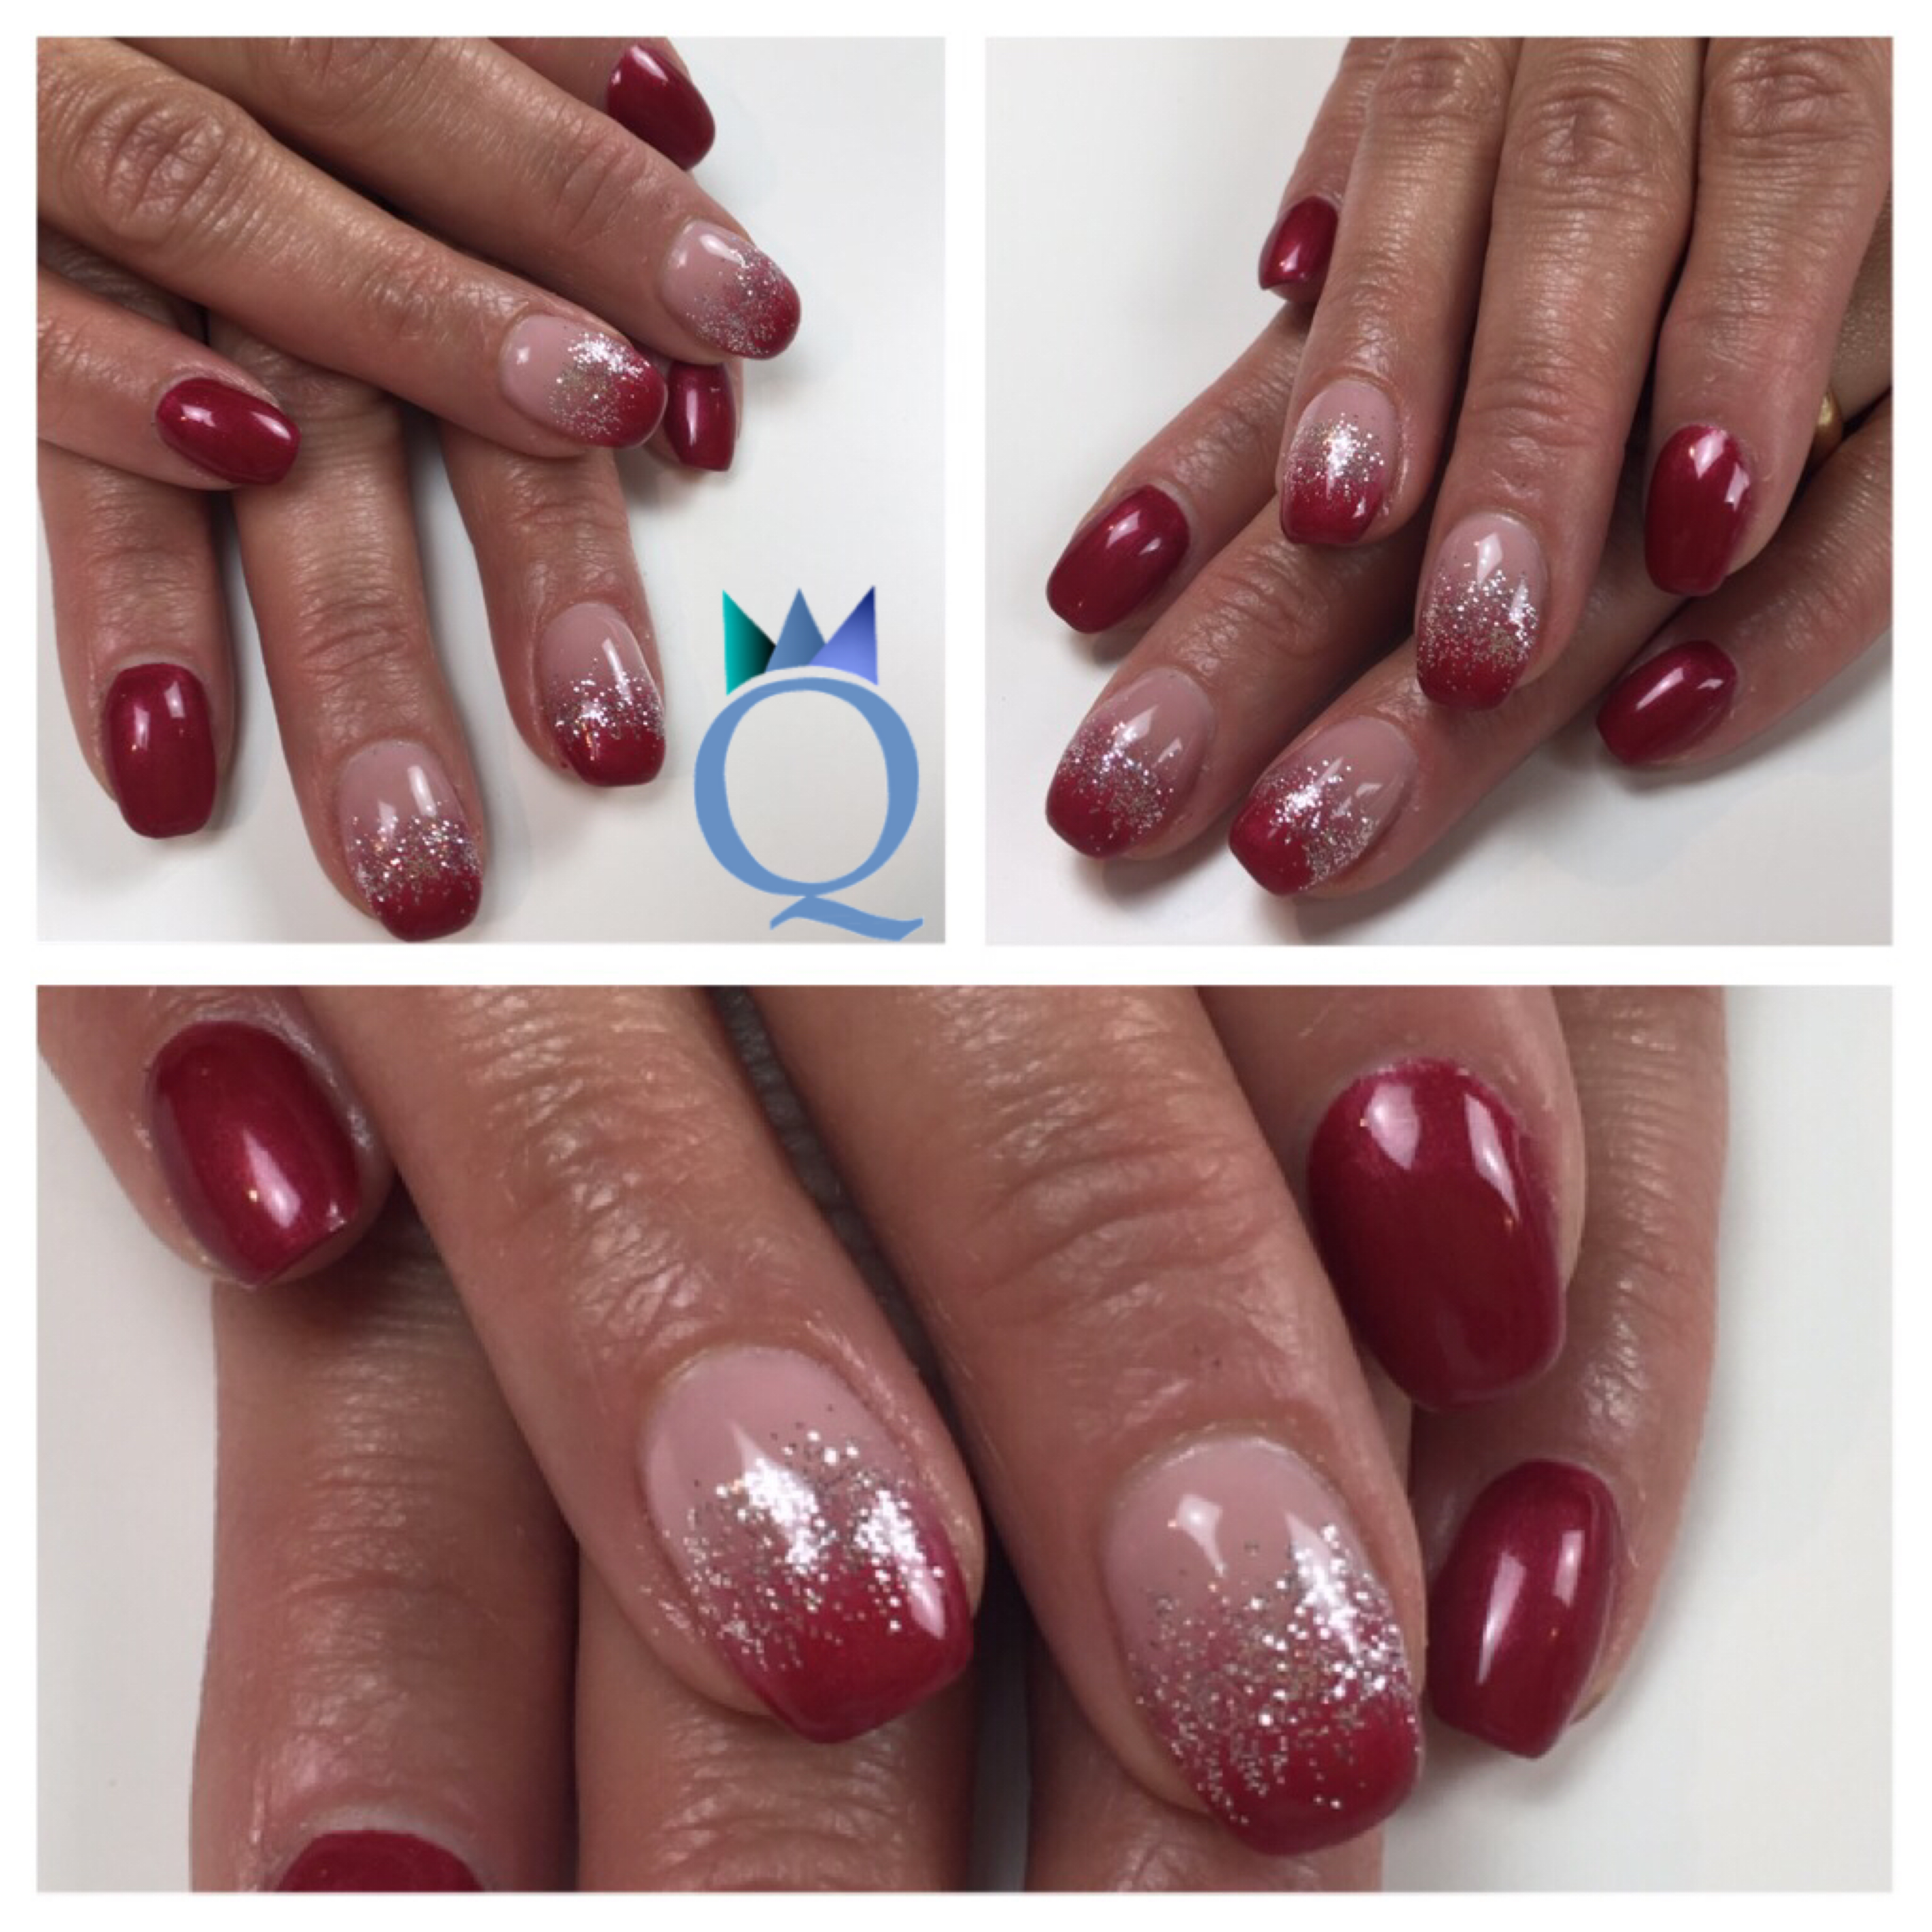 shortnails #acrylicnails #nails #red #silver #glitter #ombre ...